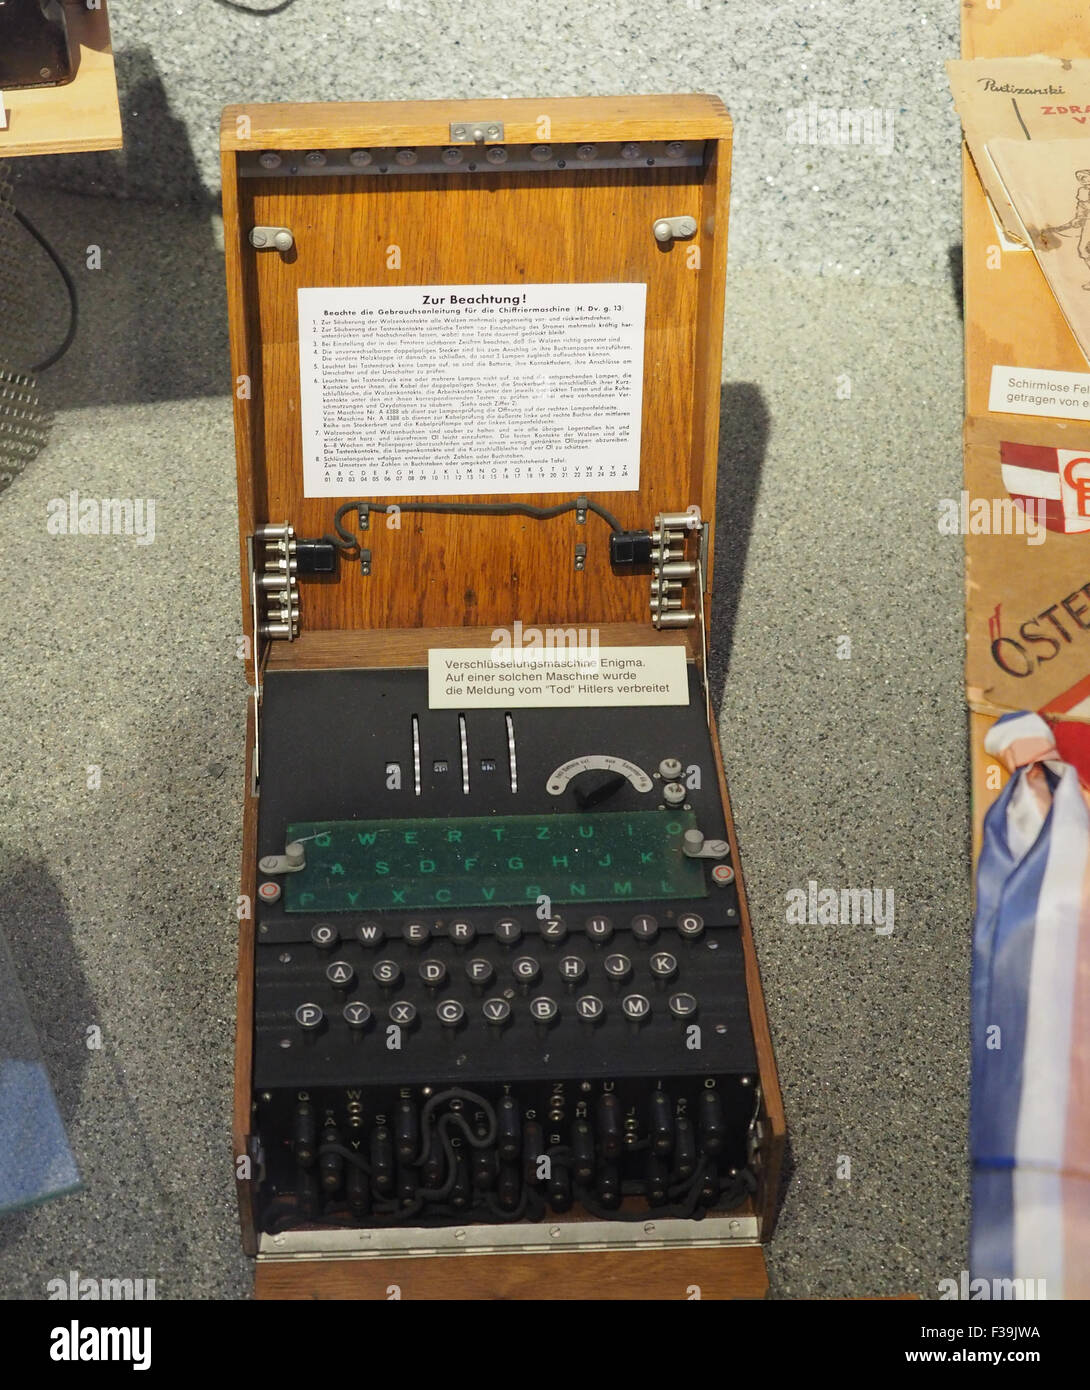 Enigma code machine on display in The Museum of Military History in Vienna, Austria - Stock Image